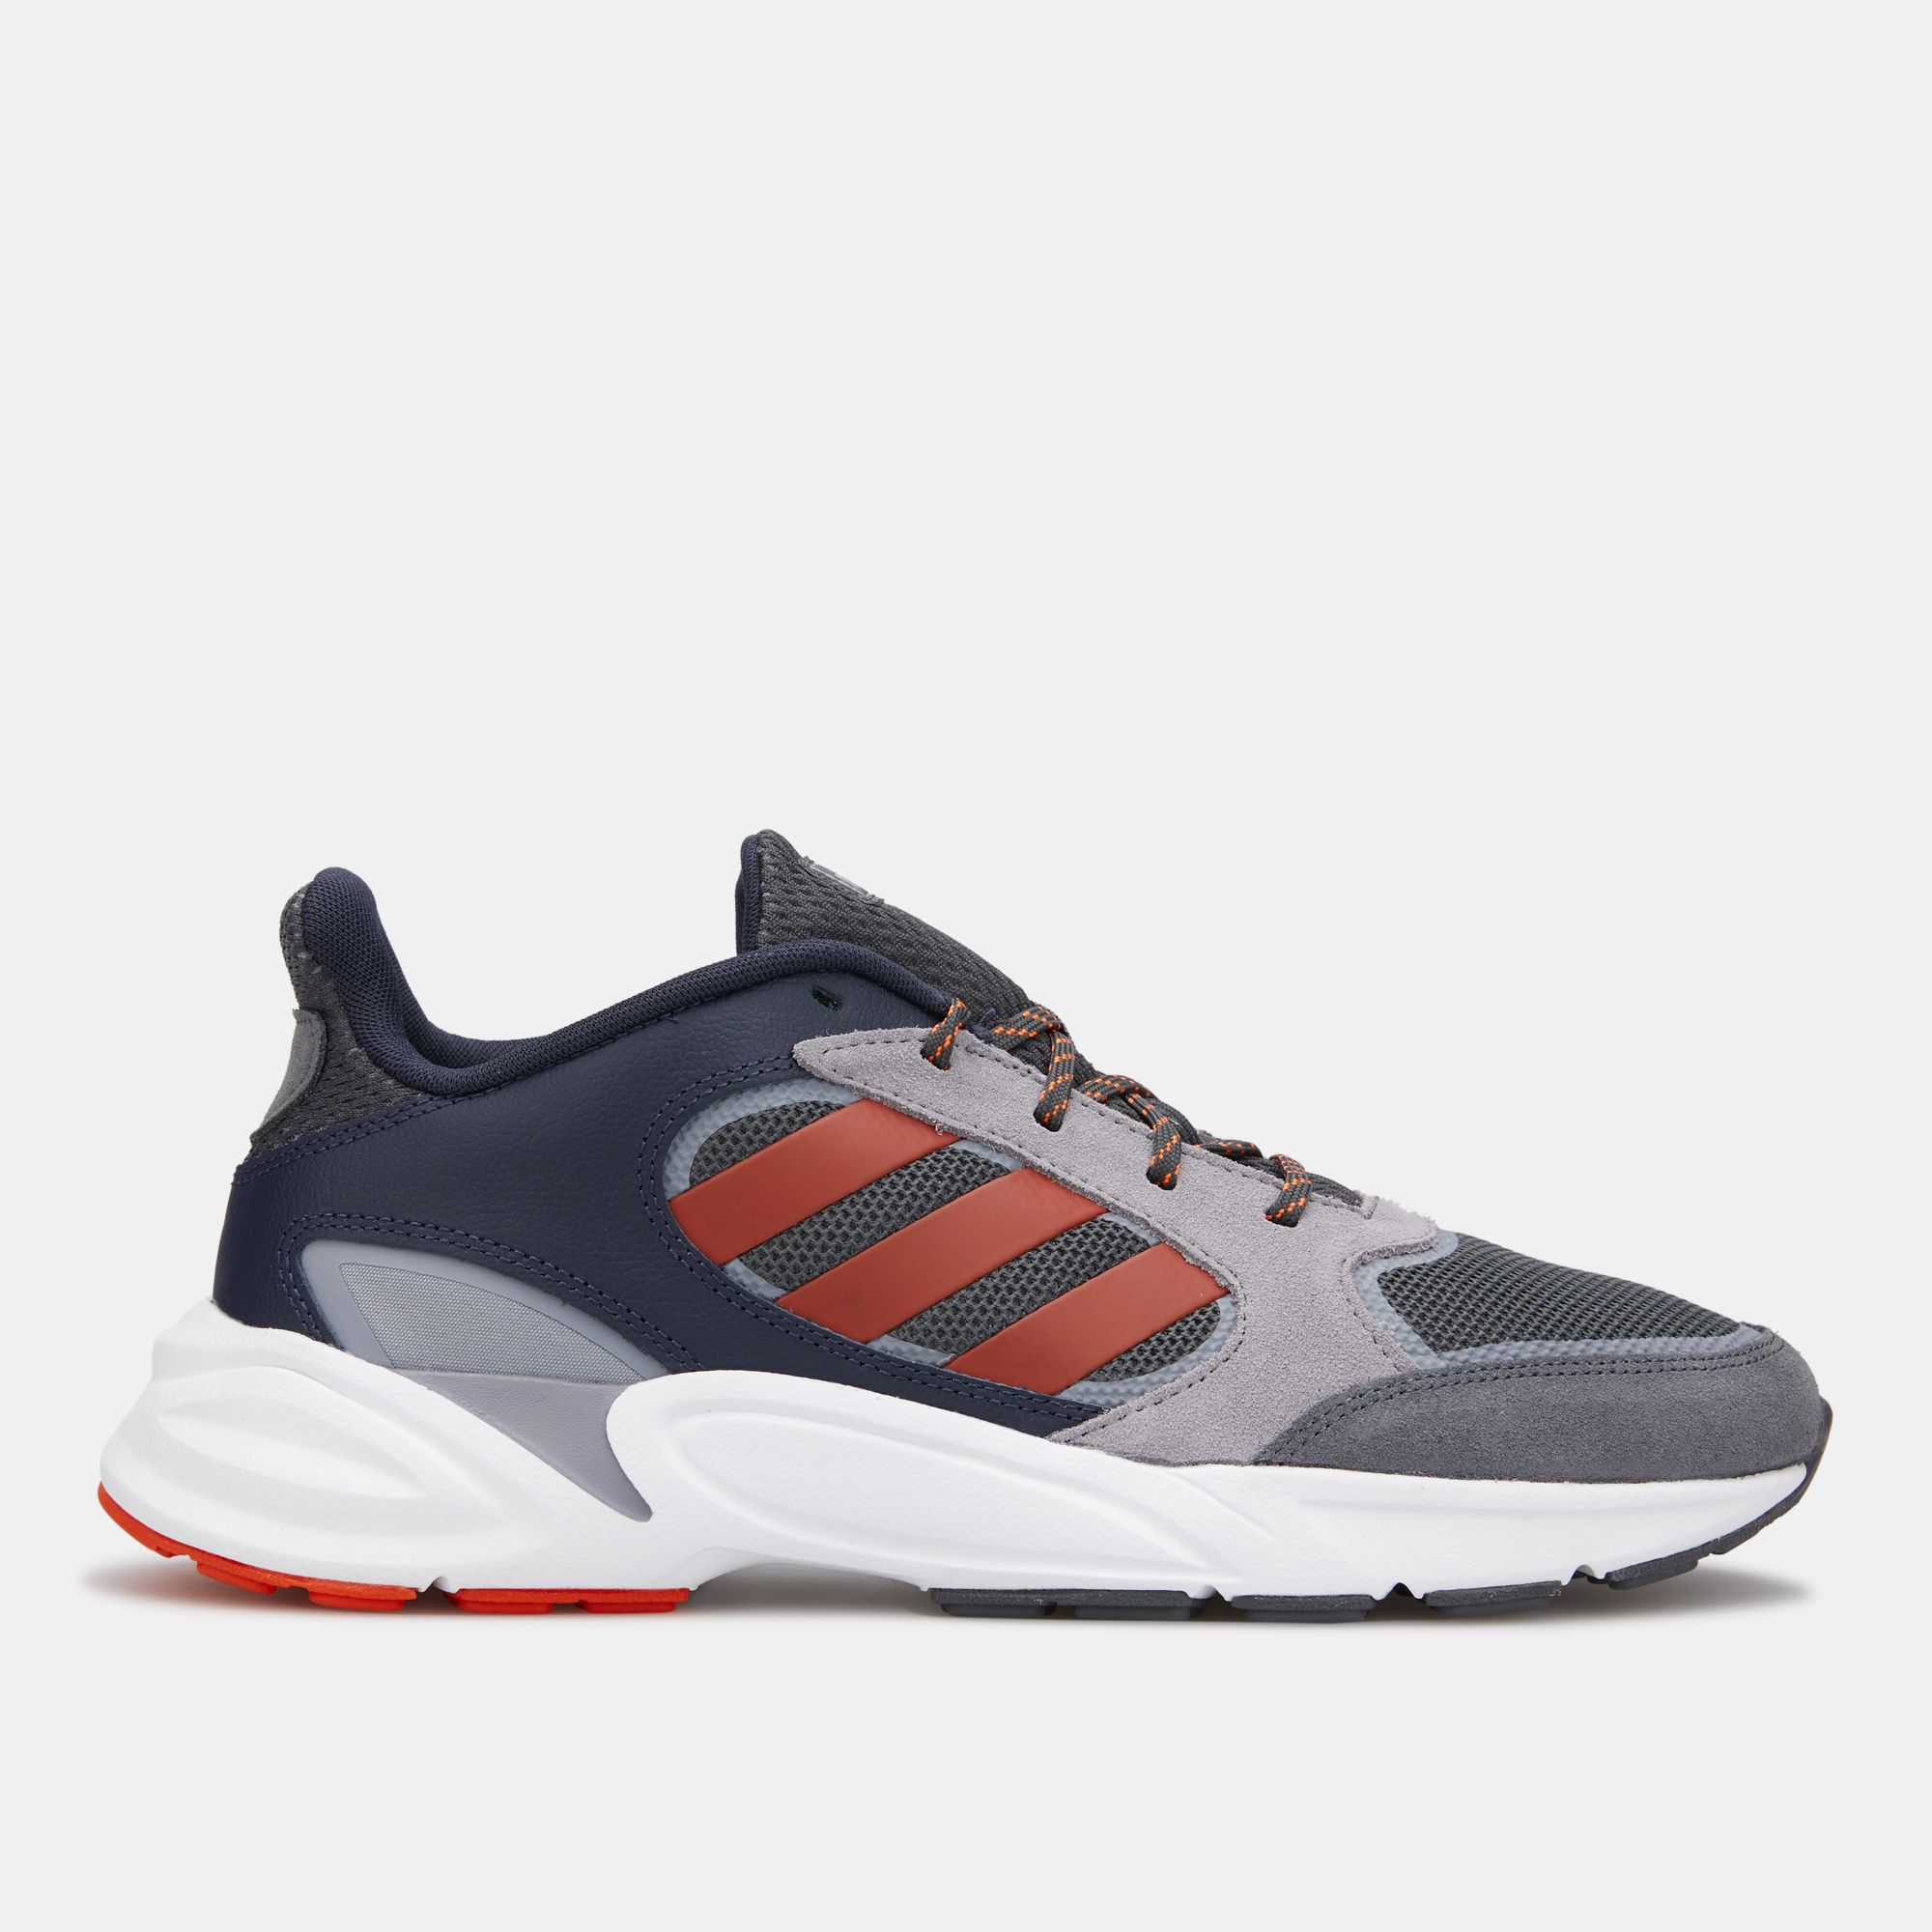 58 Best adidas Running Shoes images   Adidas running shoes